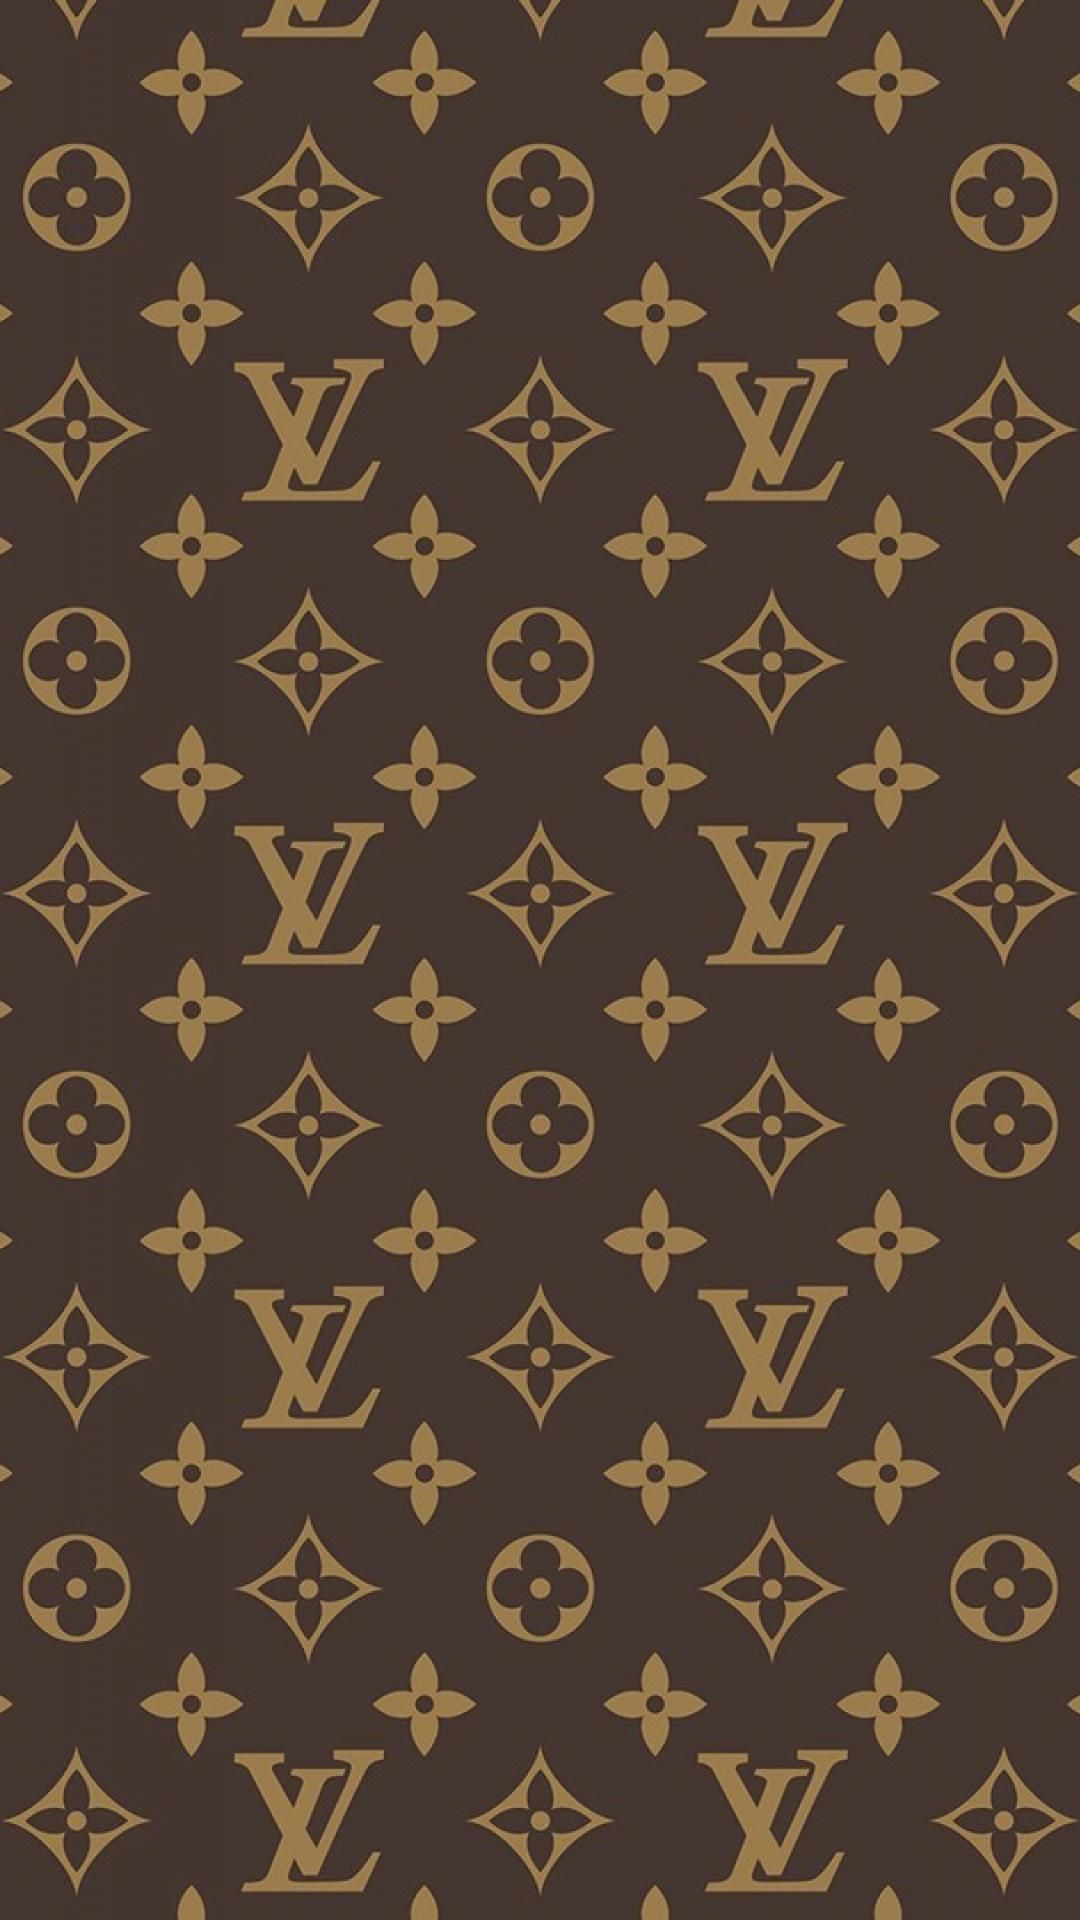 Bape Iphone 7 Wallpaper Louis Vuitton Hd Wallpapers Group 61